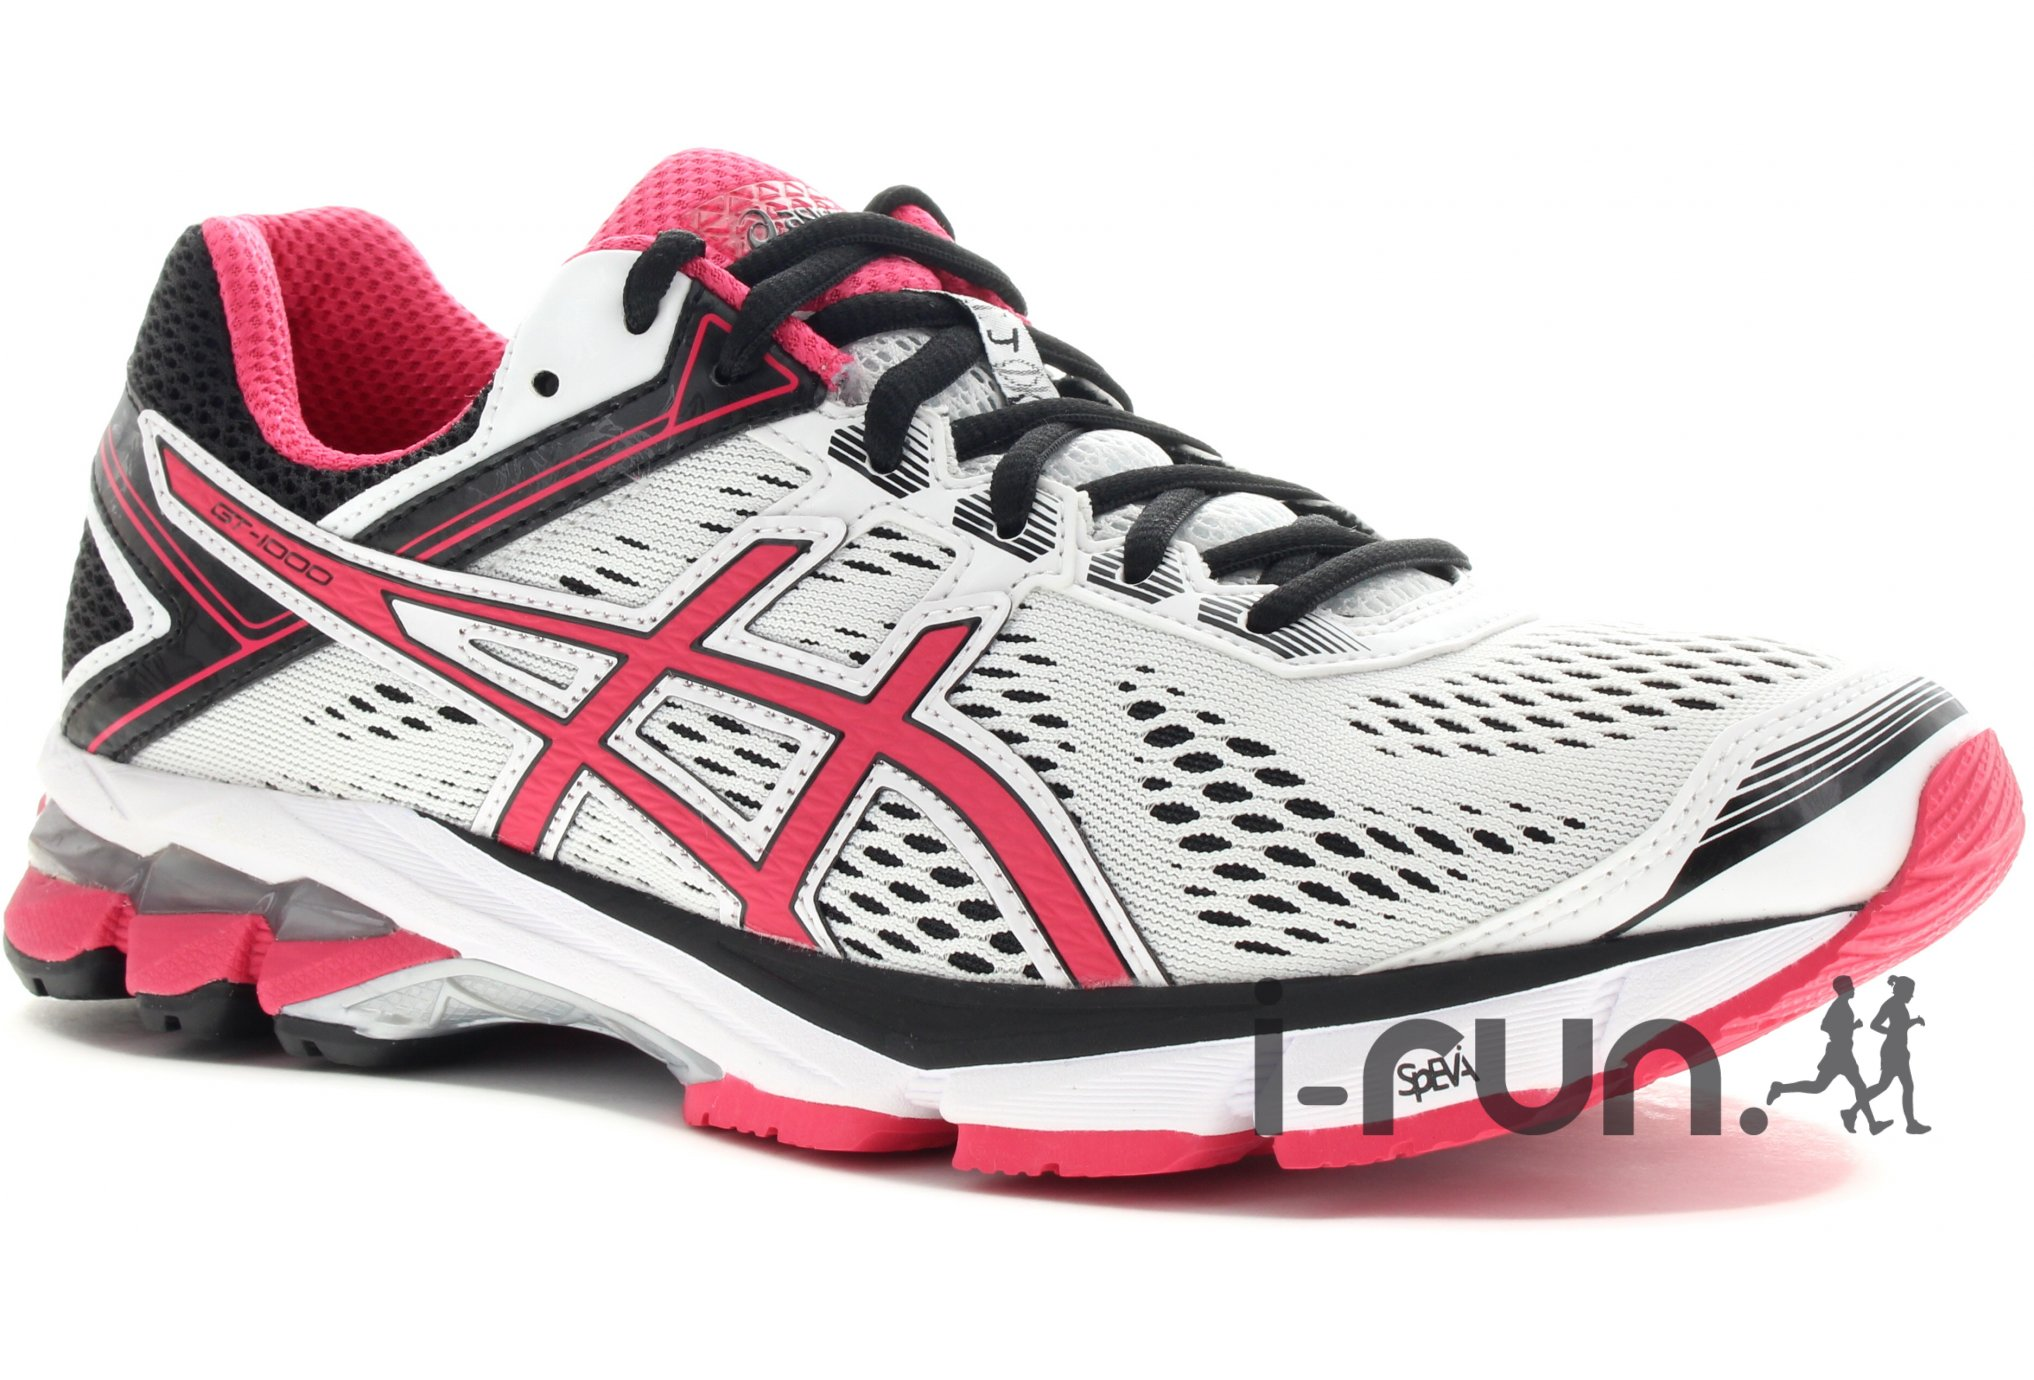 Collections Shopping Chaussures Running Asics Femme Gt 1000